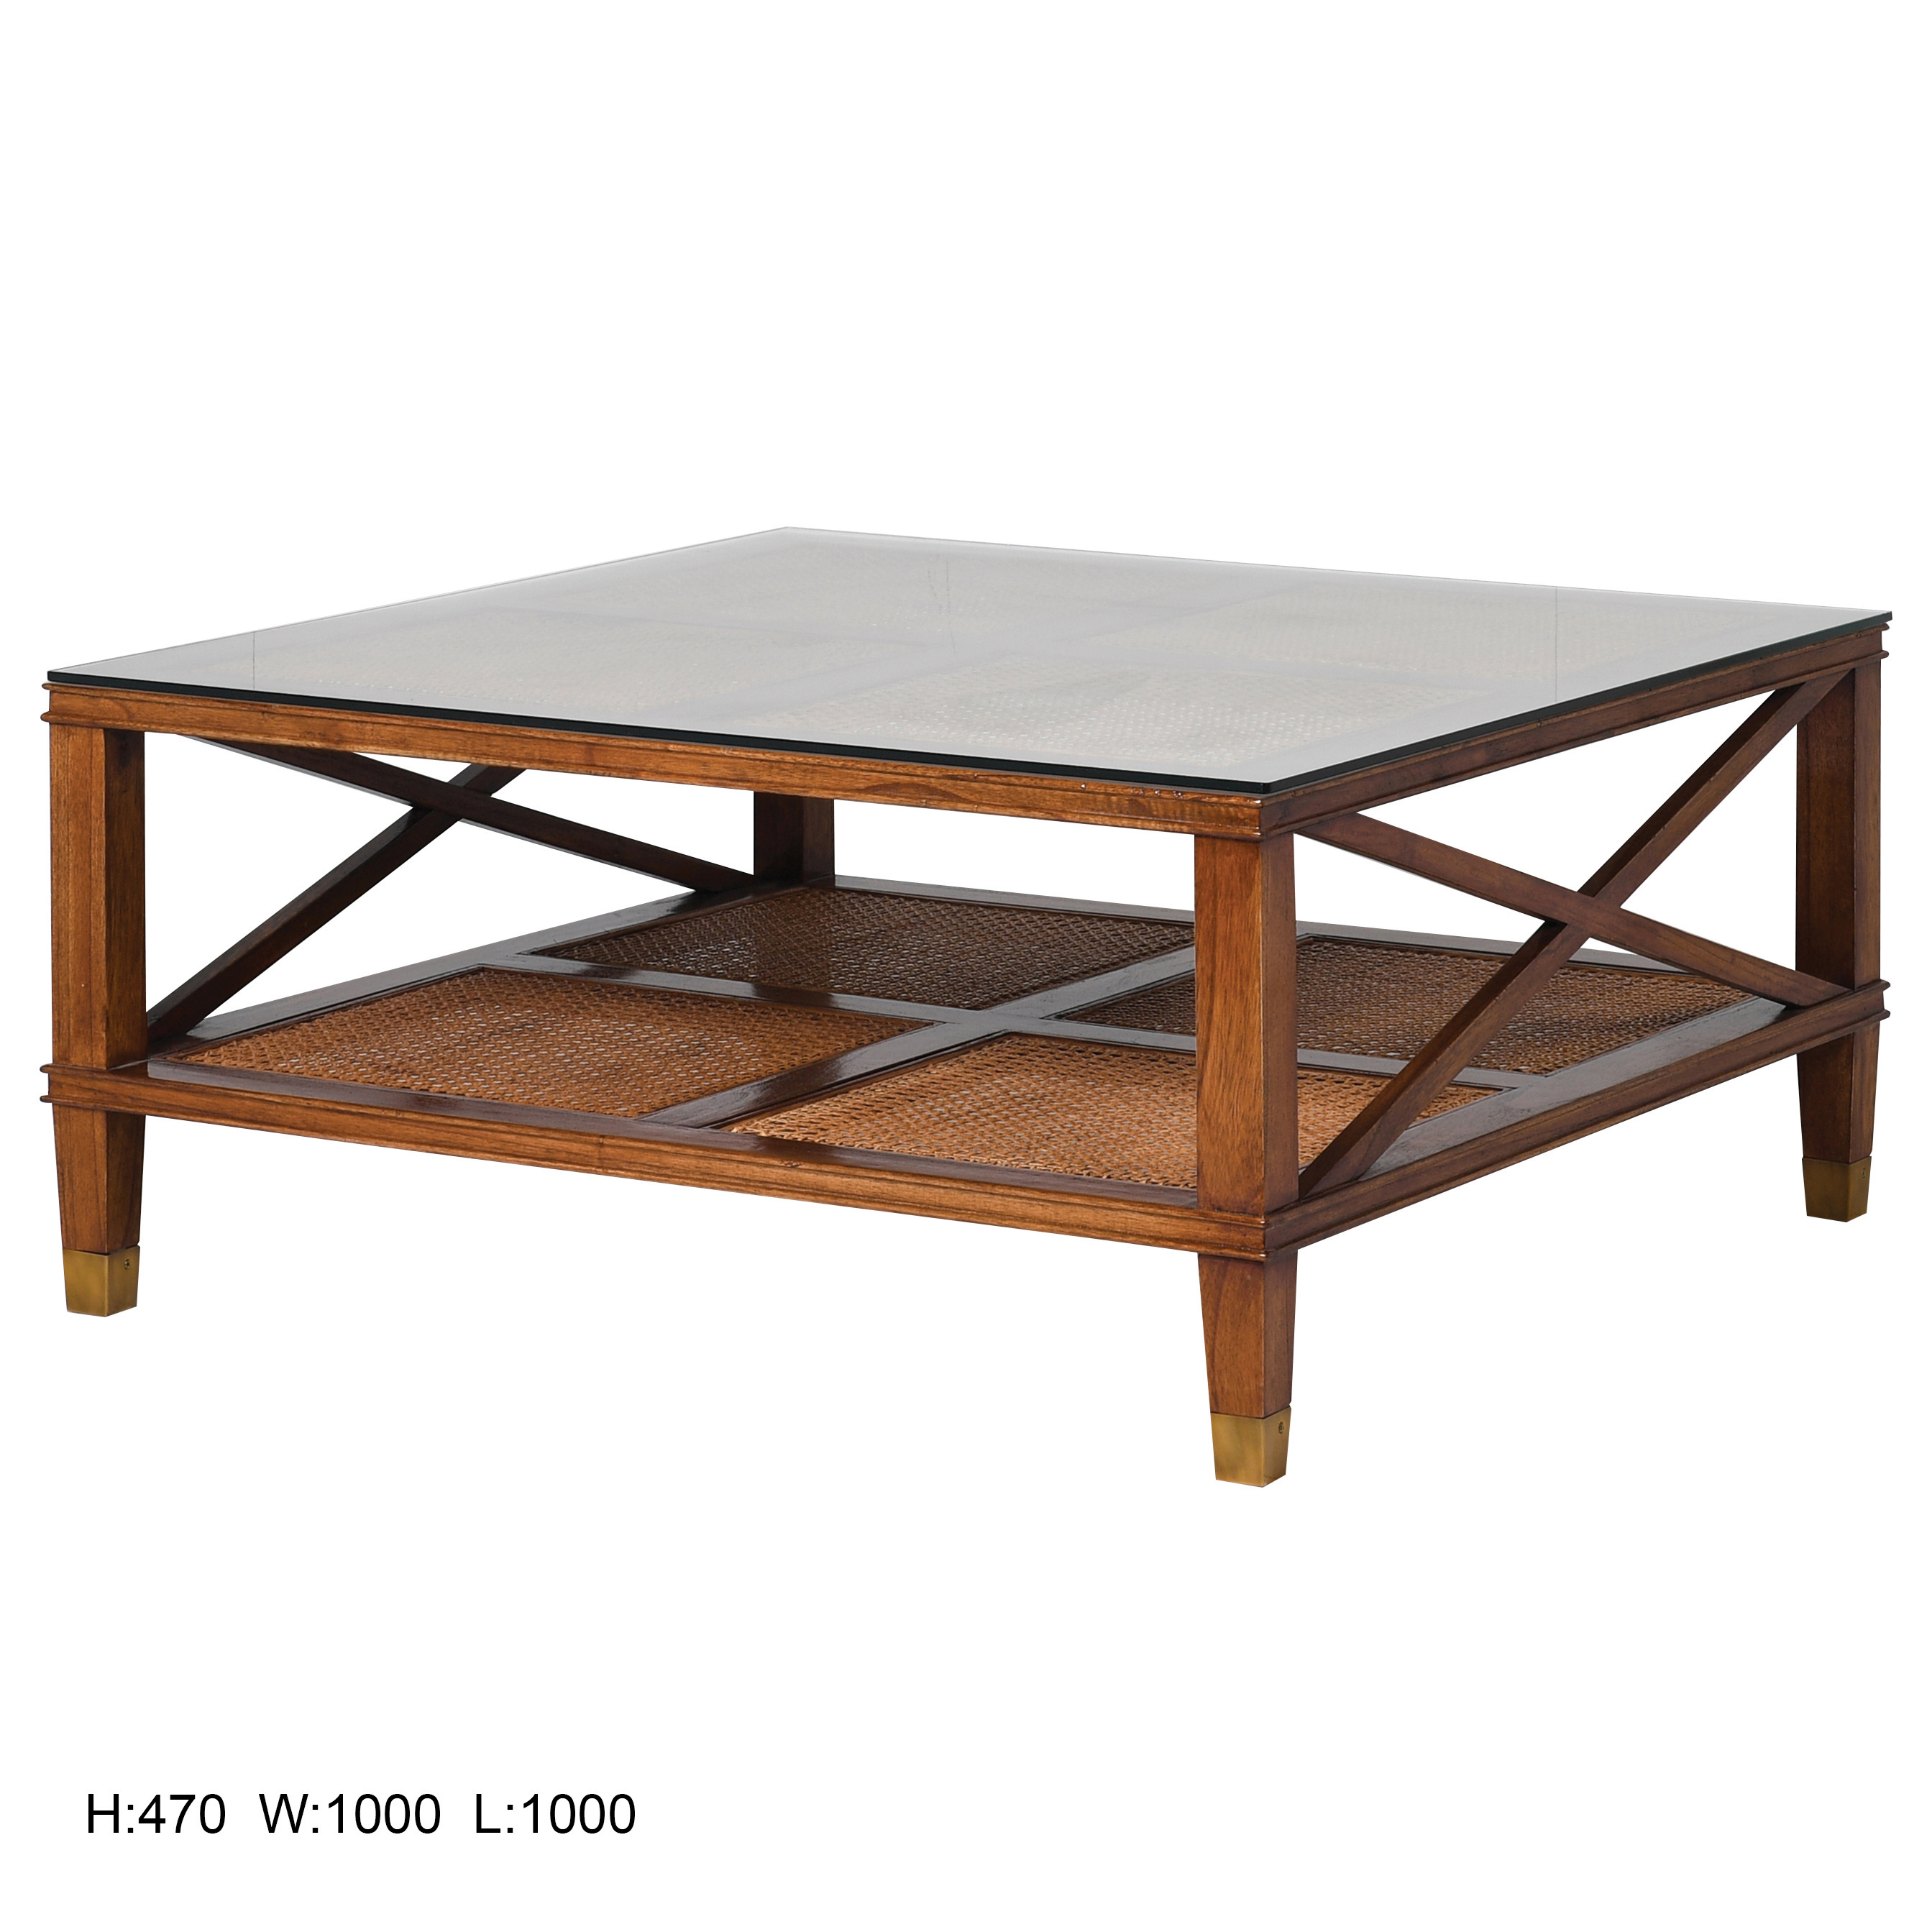 Coffee Table W - €1499.00